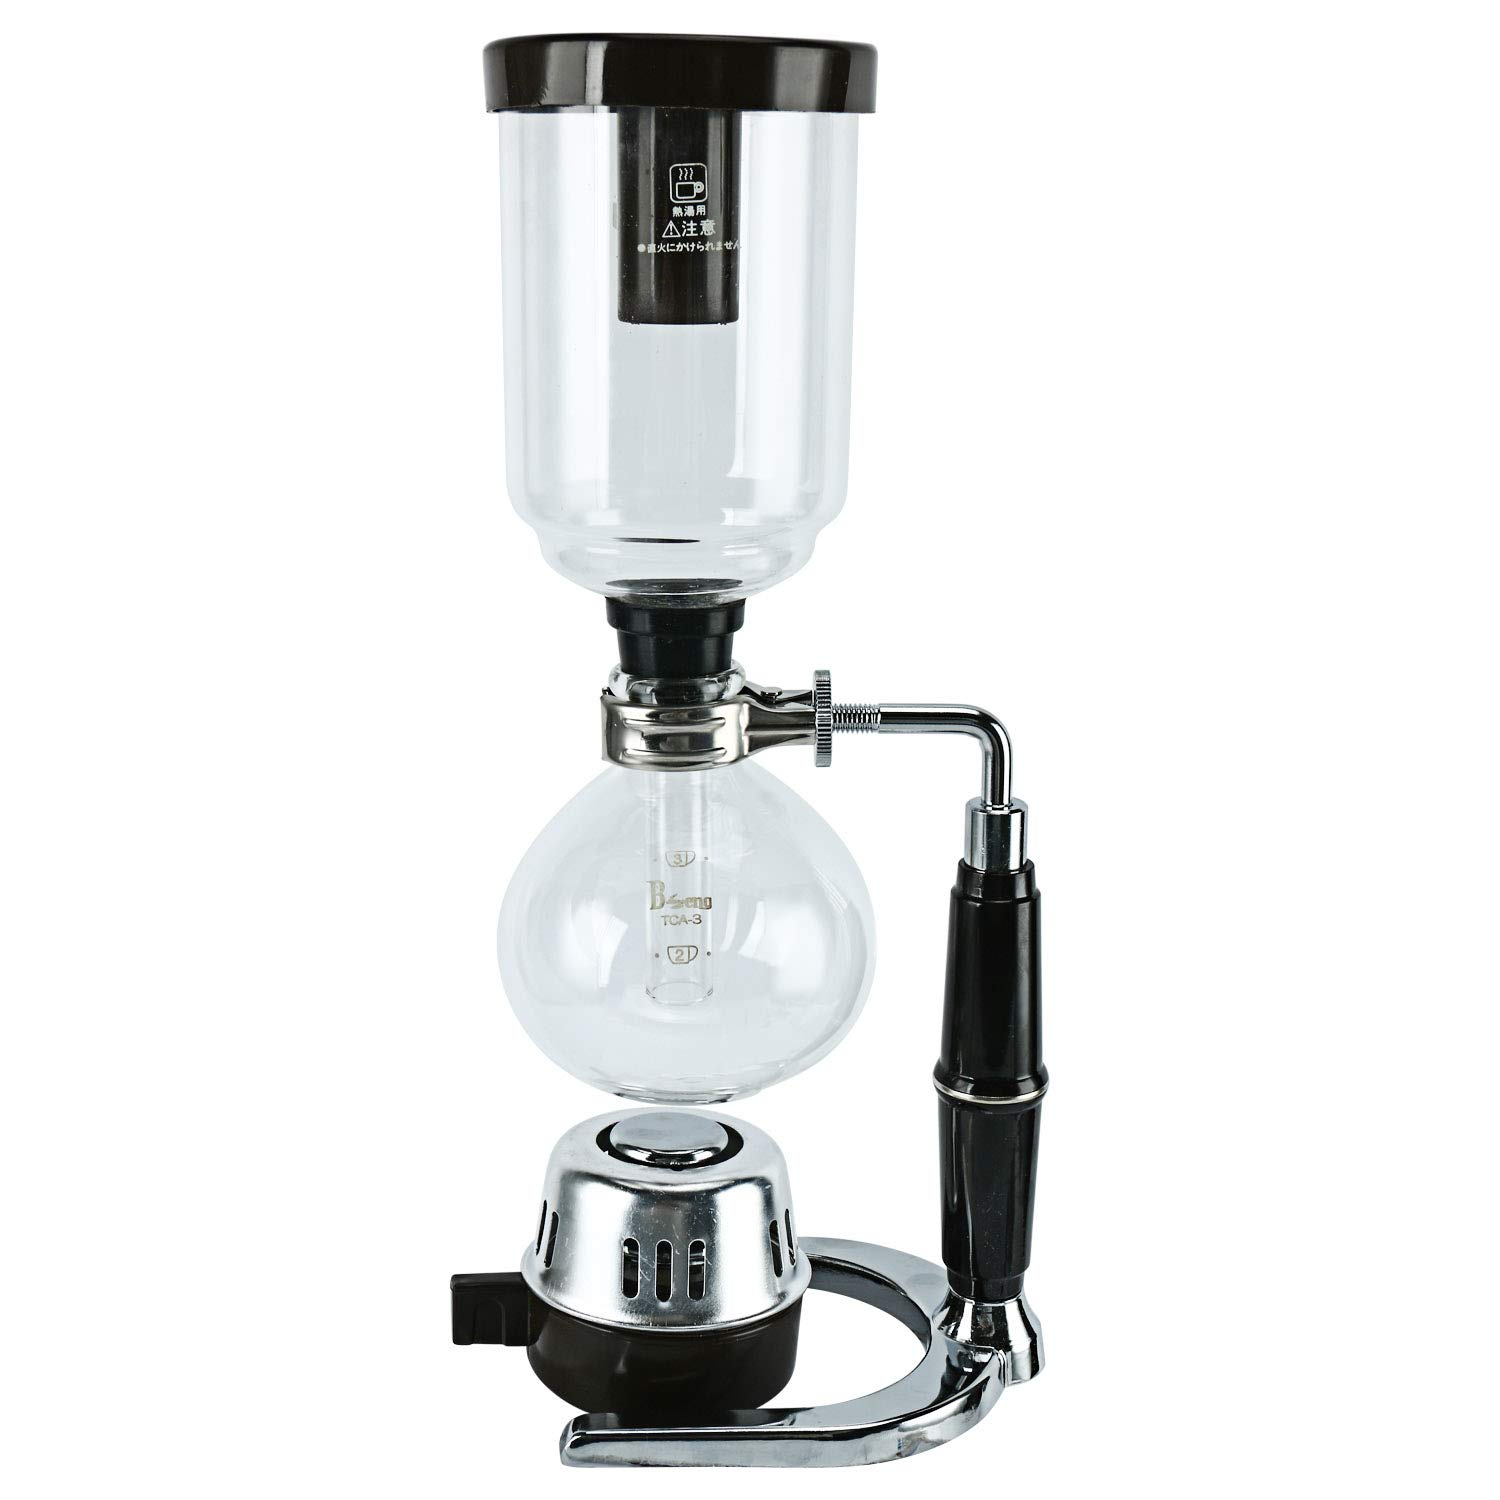 Boeng Tabletop Siphon (Syphon) Coffee Maker with Alcohol Burner, Plastic Coffee Powder Spoon, Filter Cloth and Wooden Stirrer (3 Cups)